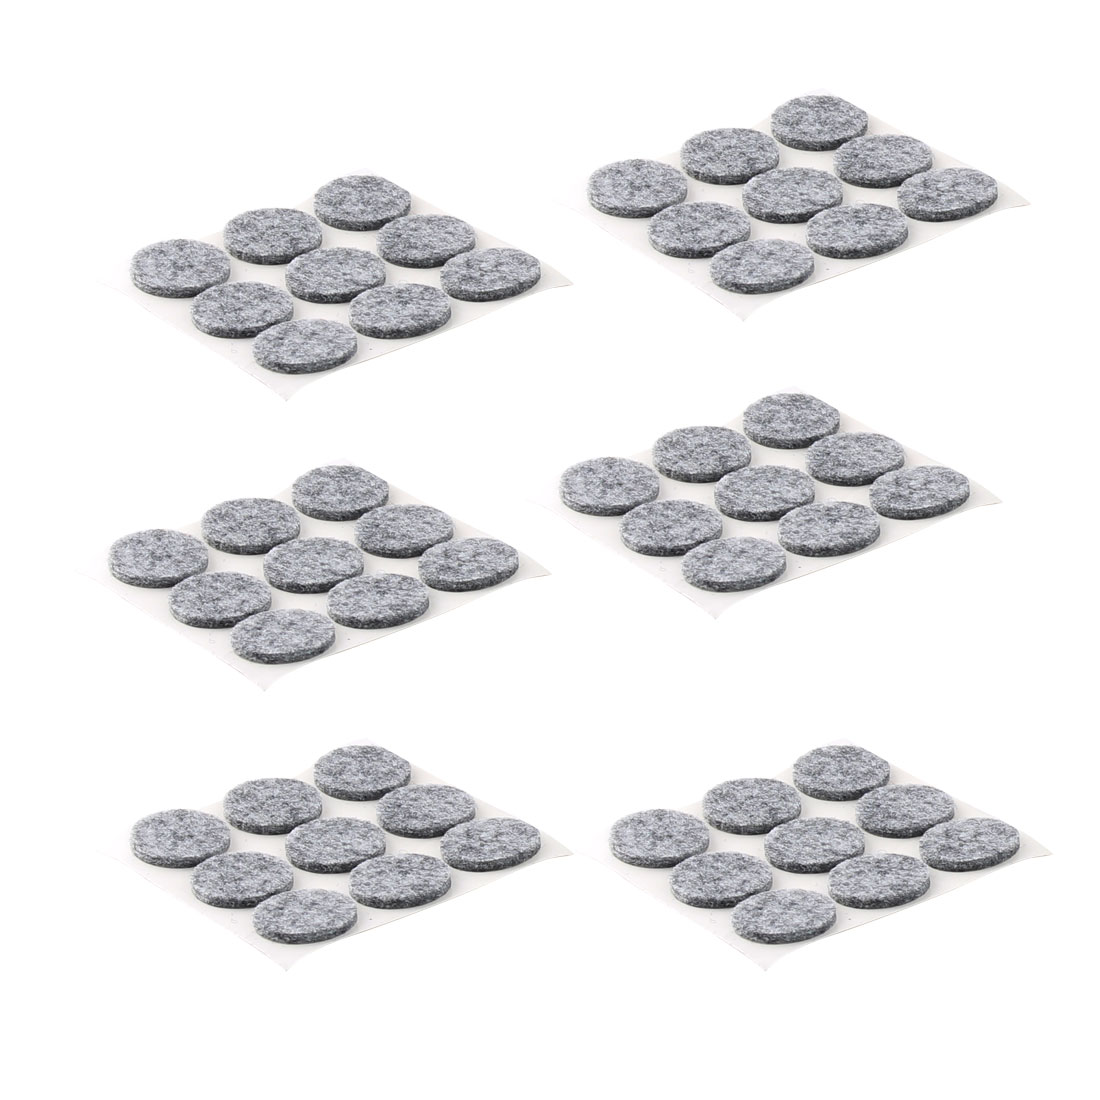 Houseware Self Adhesive Surface Protection Furniture Felt Pads Mats Gray 22mm Dia 54pcs